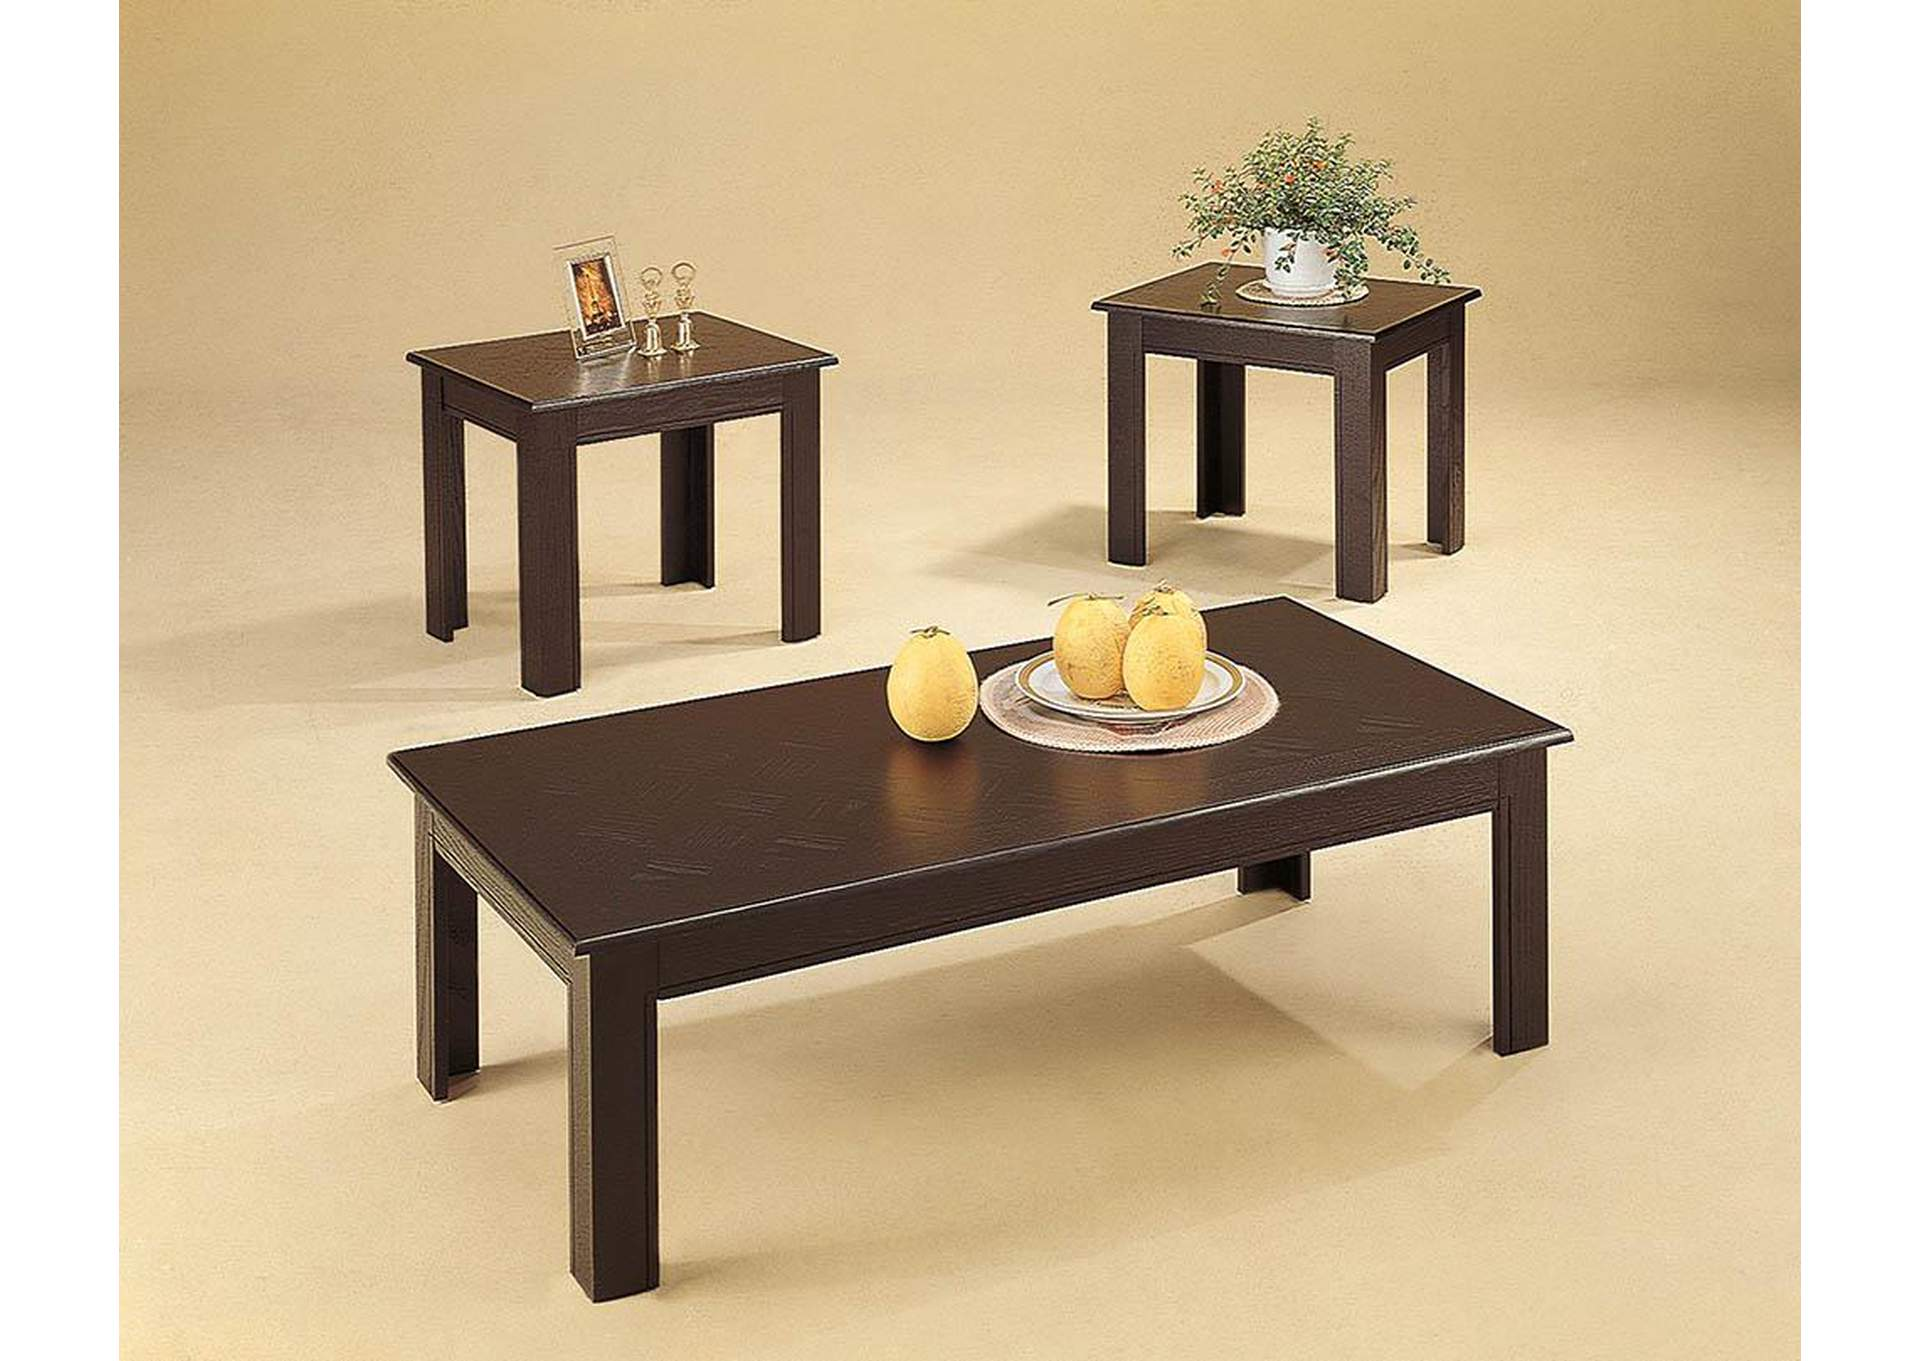 Furniture Stores In Miami 1 Discount Ashley Home Furniture Black Oak Veneer Parquet 3pc Table Set